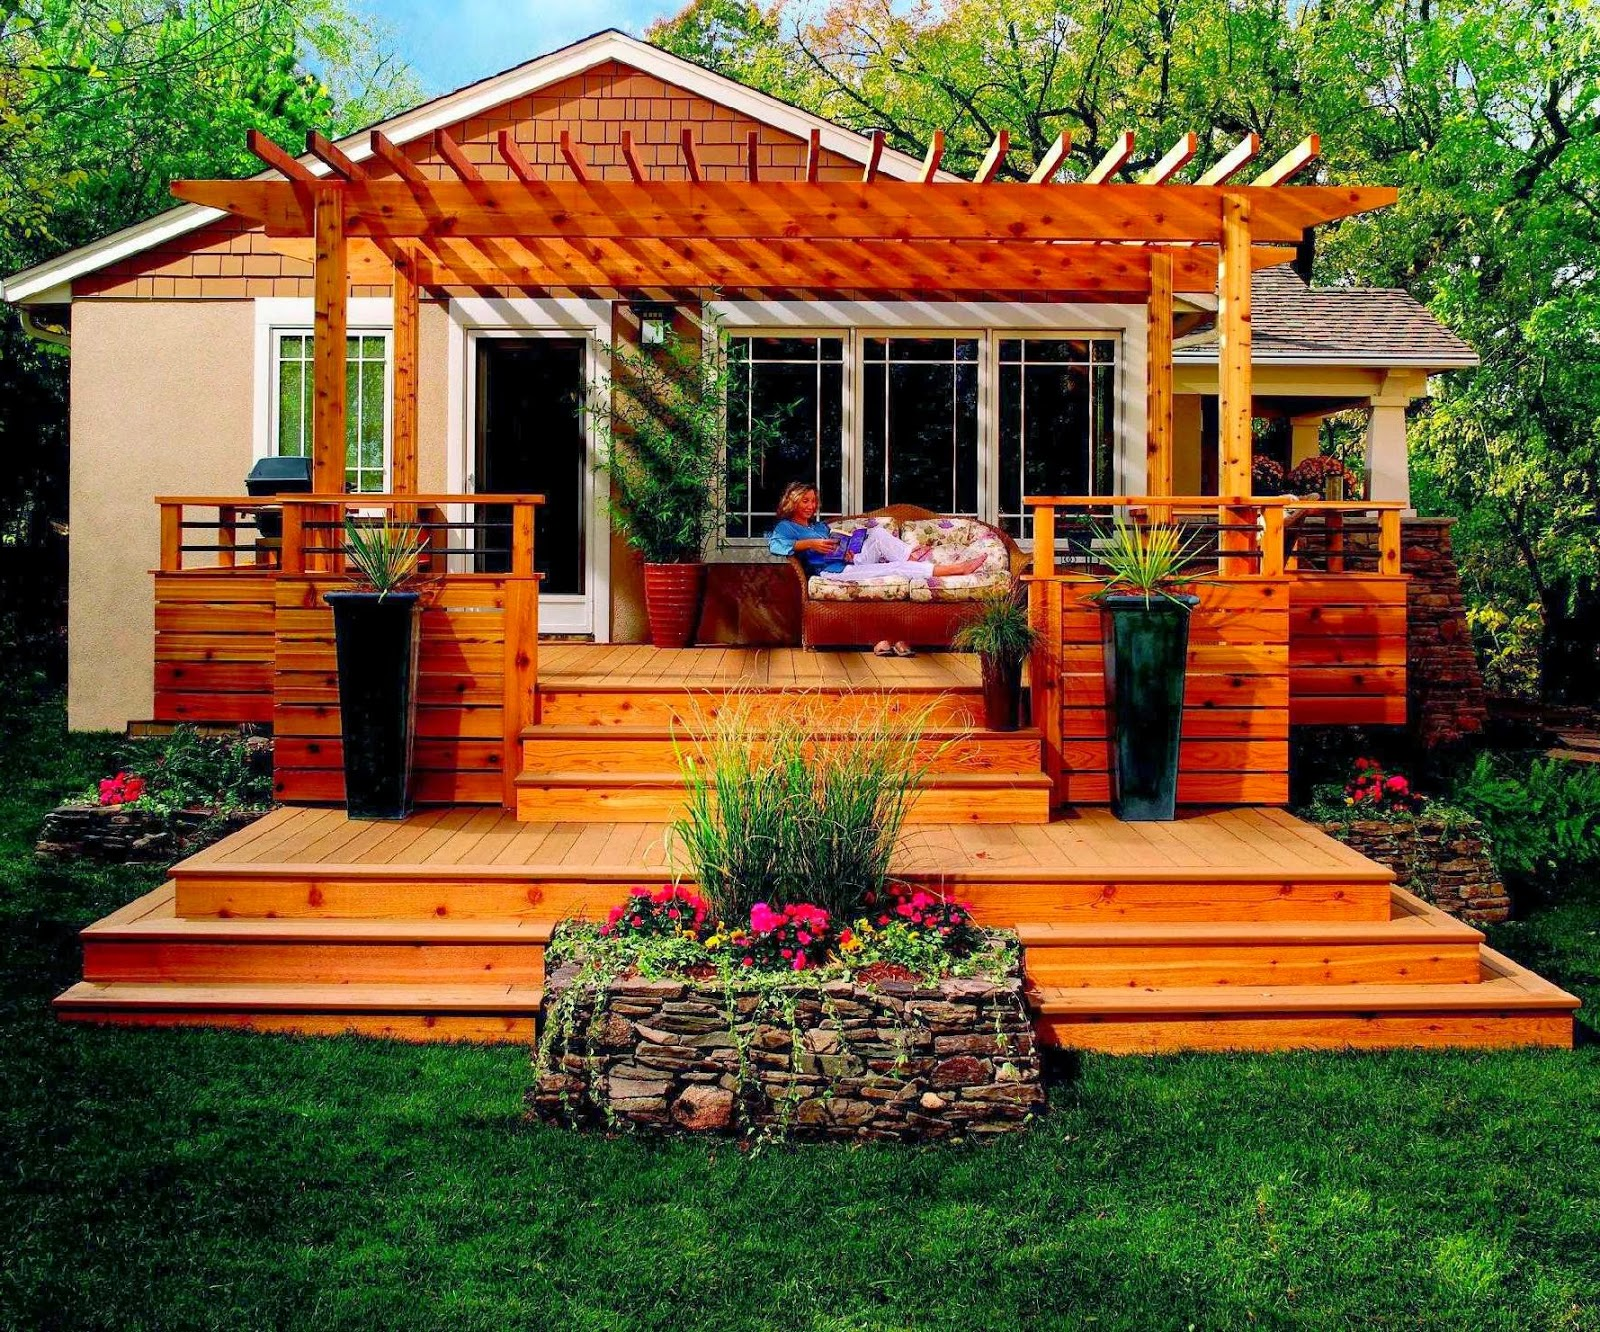 Awesome backyard deck design for Small backyard design ideas